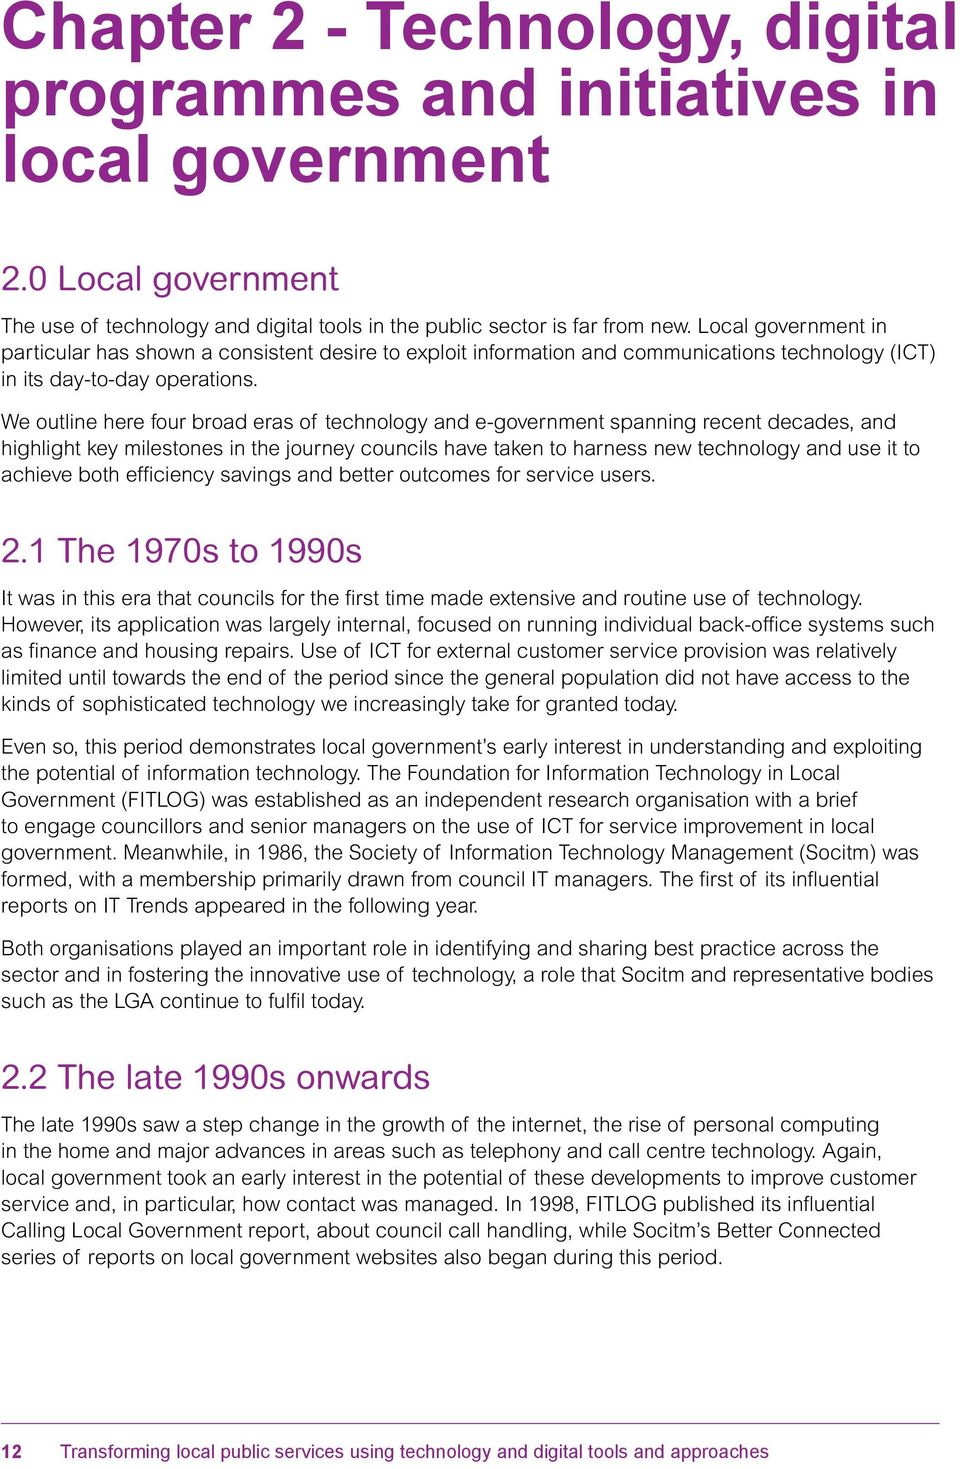 We outline here four broad eras of technology and e-government spanning recent decades, and highlight key milestones in the journey councils have taken to harness new technology and use it to achieve